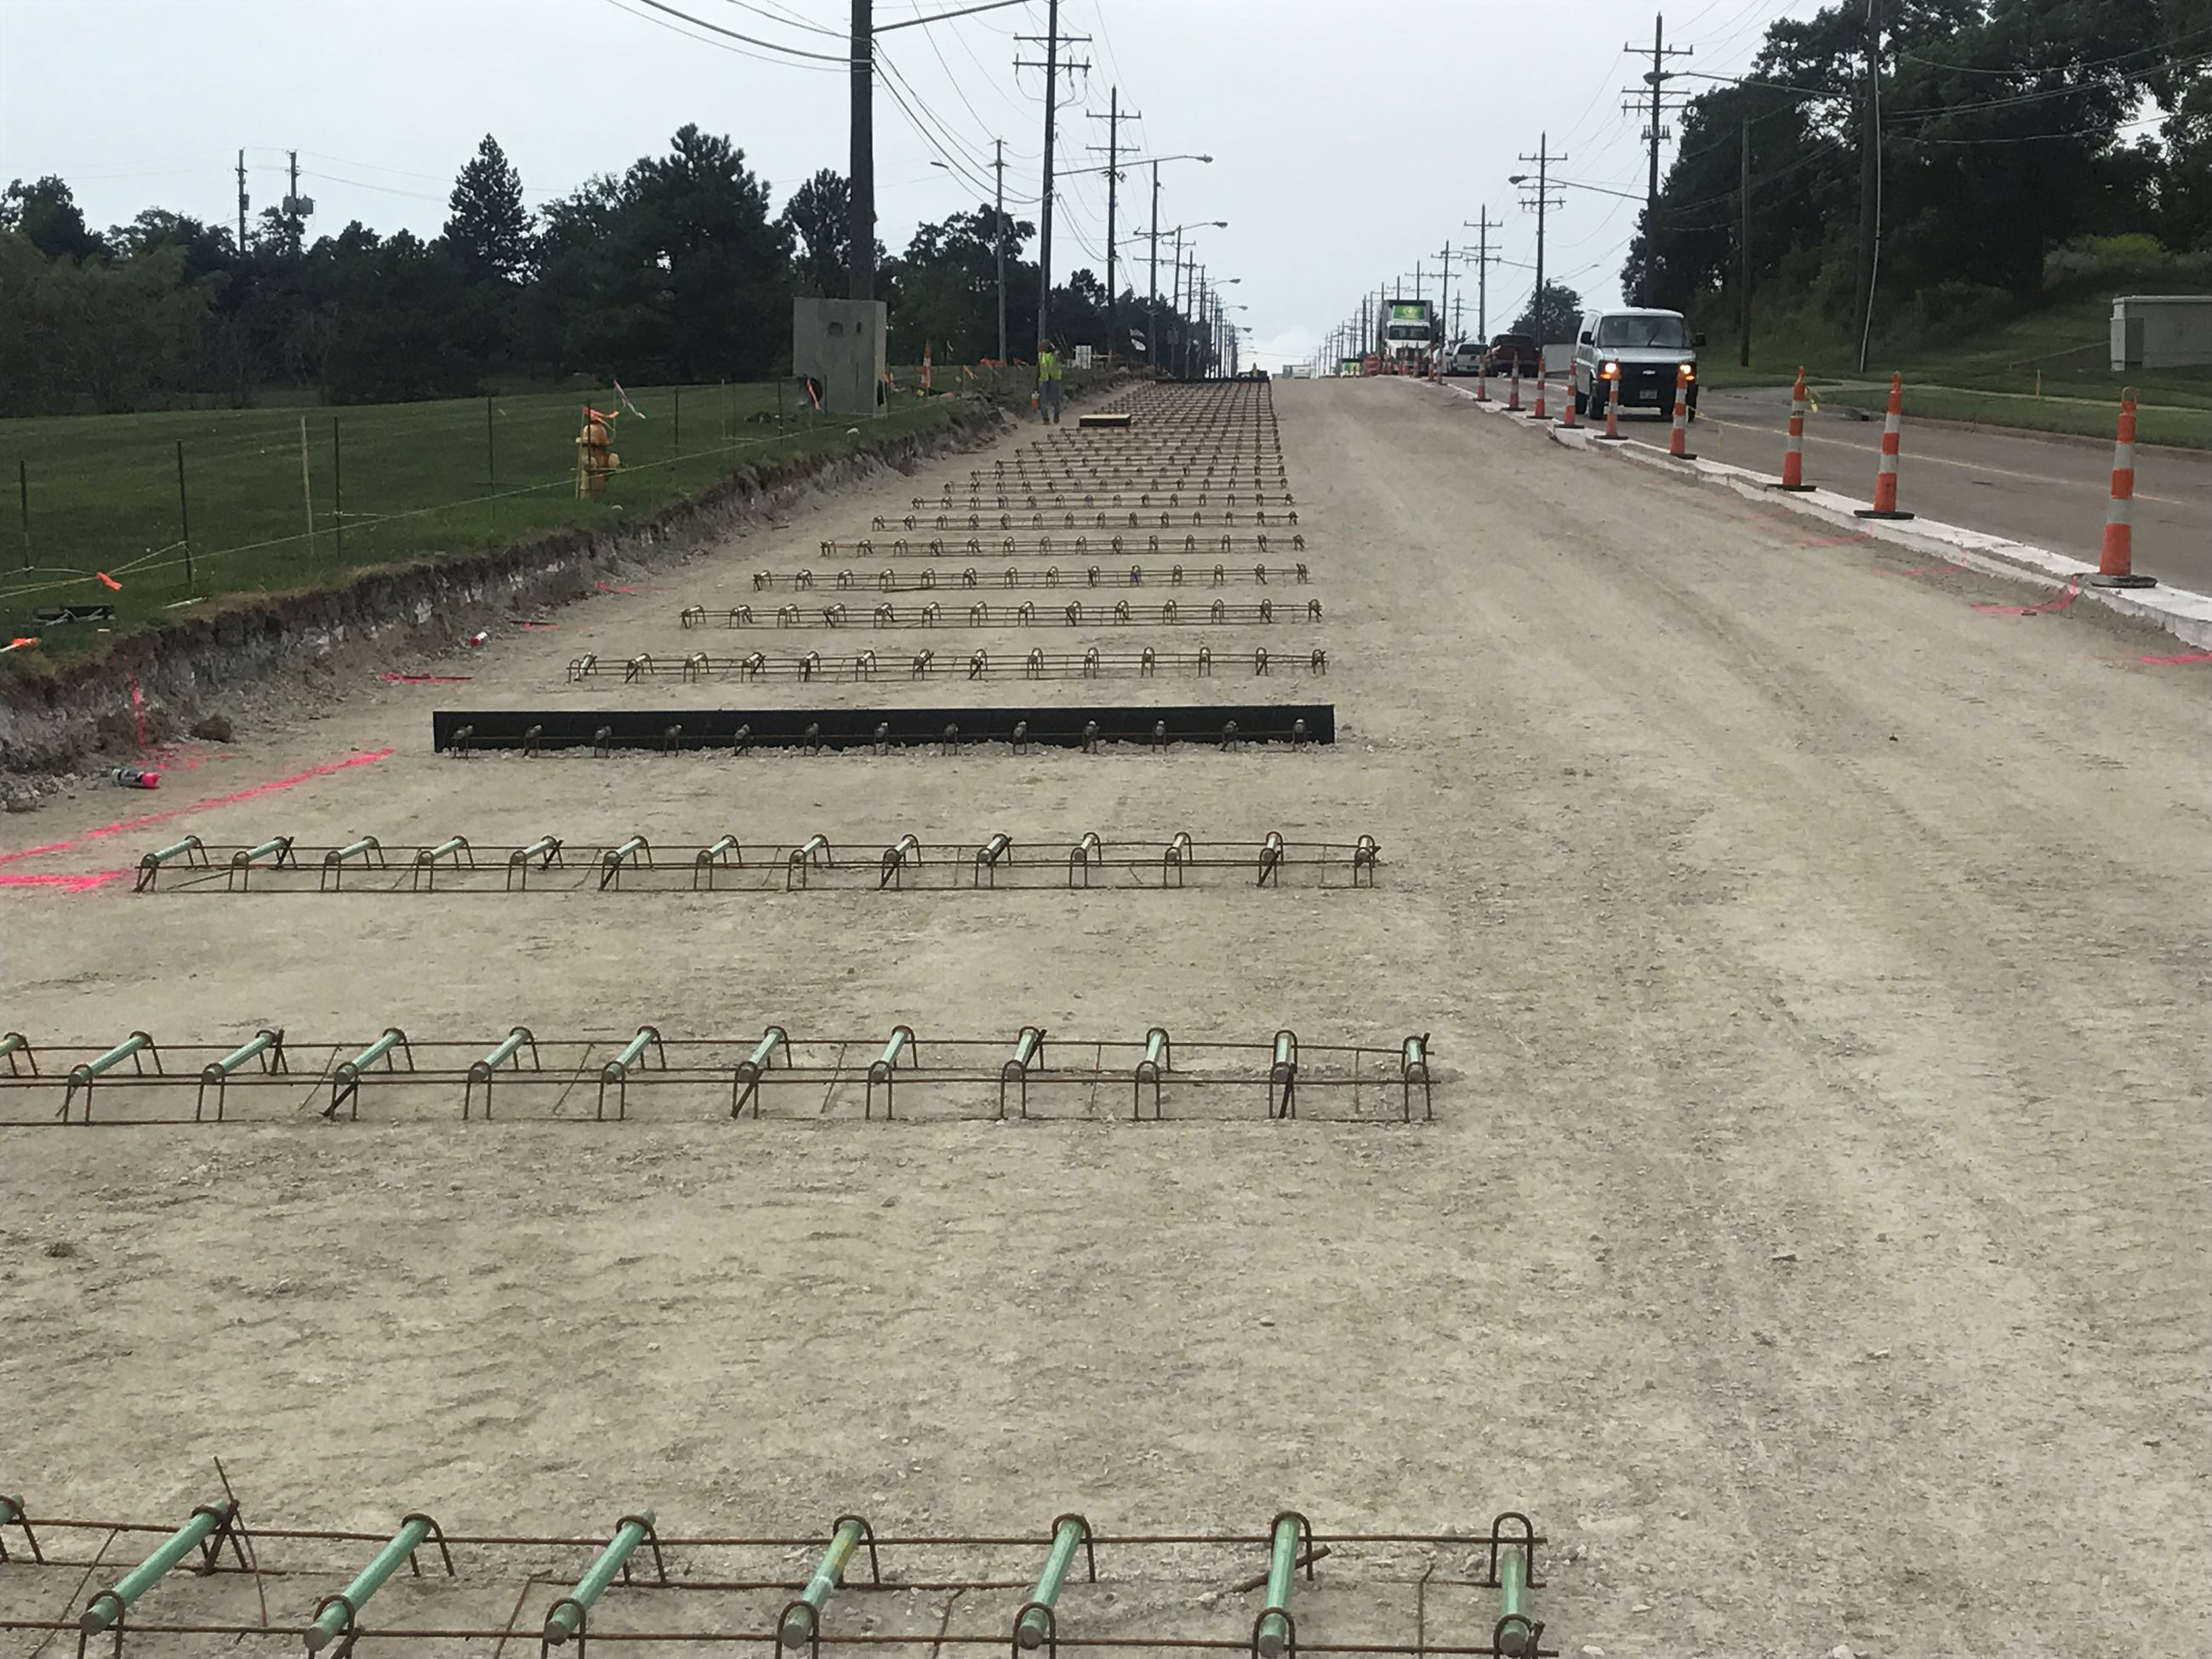 Cochran Phase II - Rebar baskets and expansion joints southbound curb lane